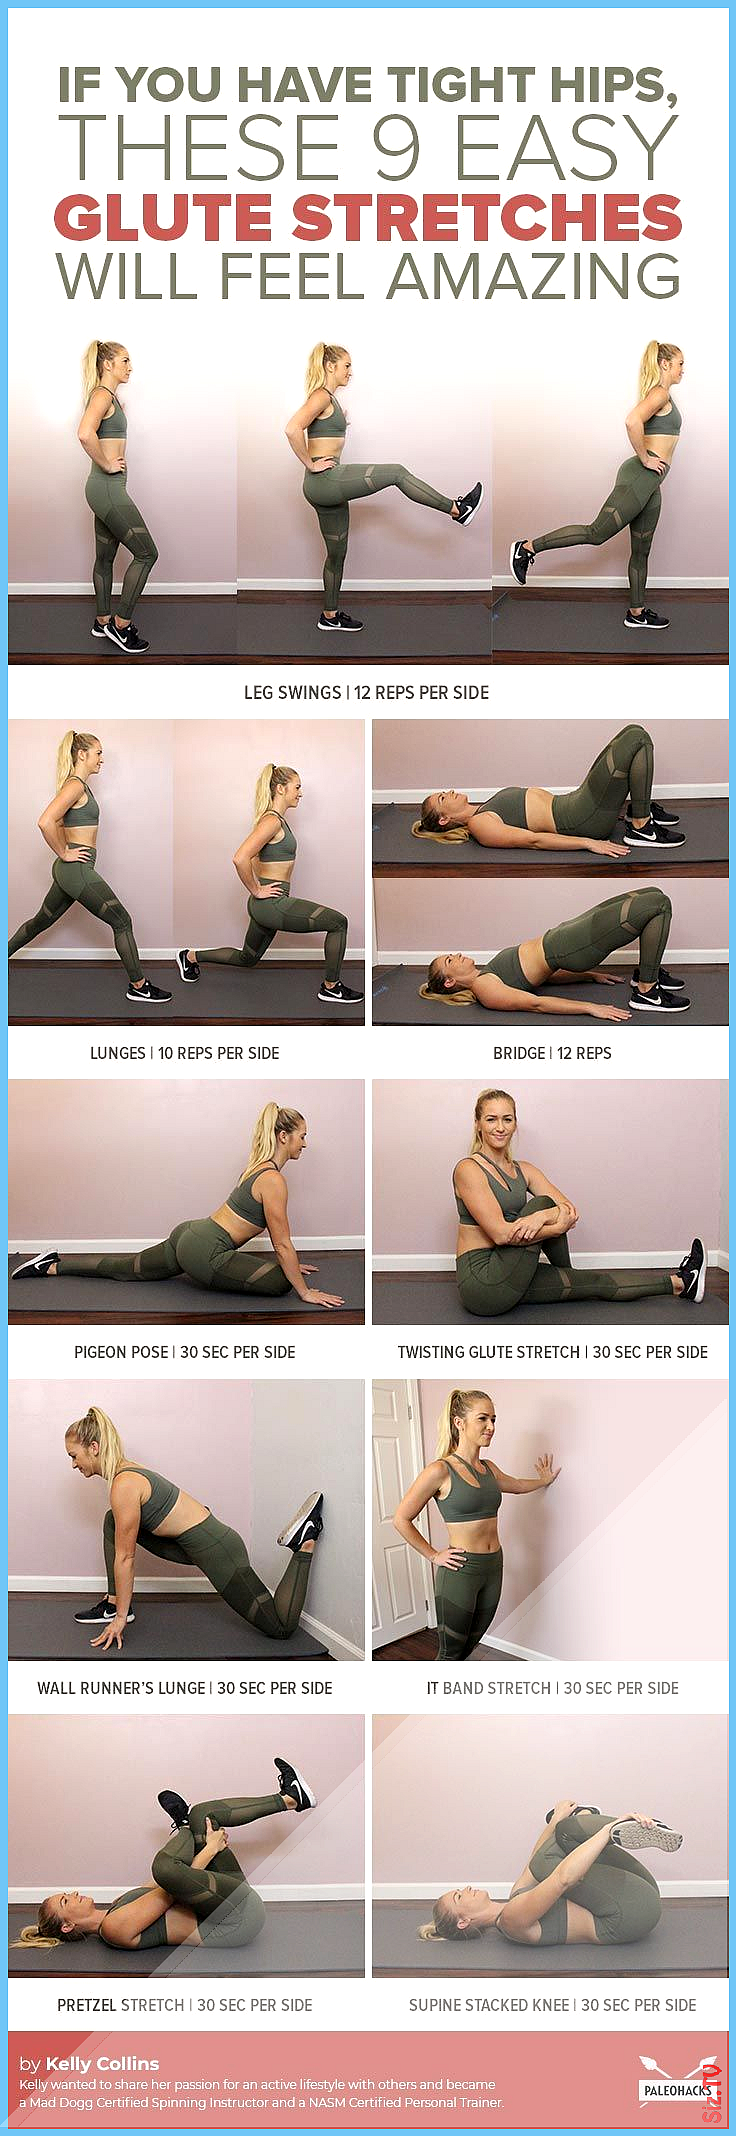 If You Have Tight Hips These 9 Easy Stretches Will Feel Amazing  PaleoHacks  Paleo Recipes Health 03...